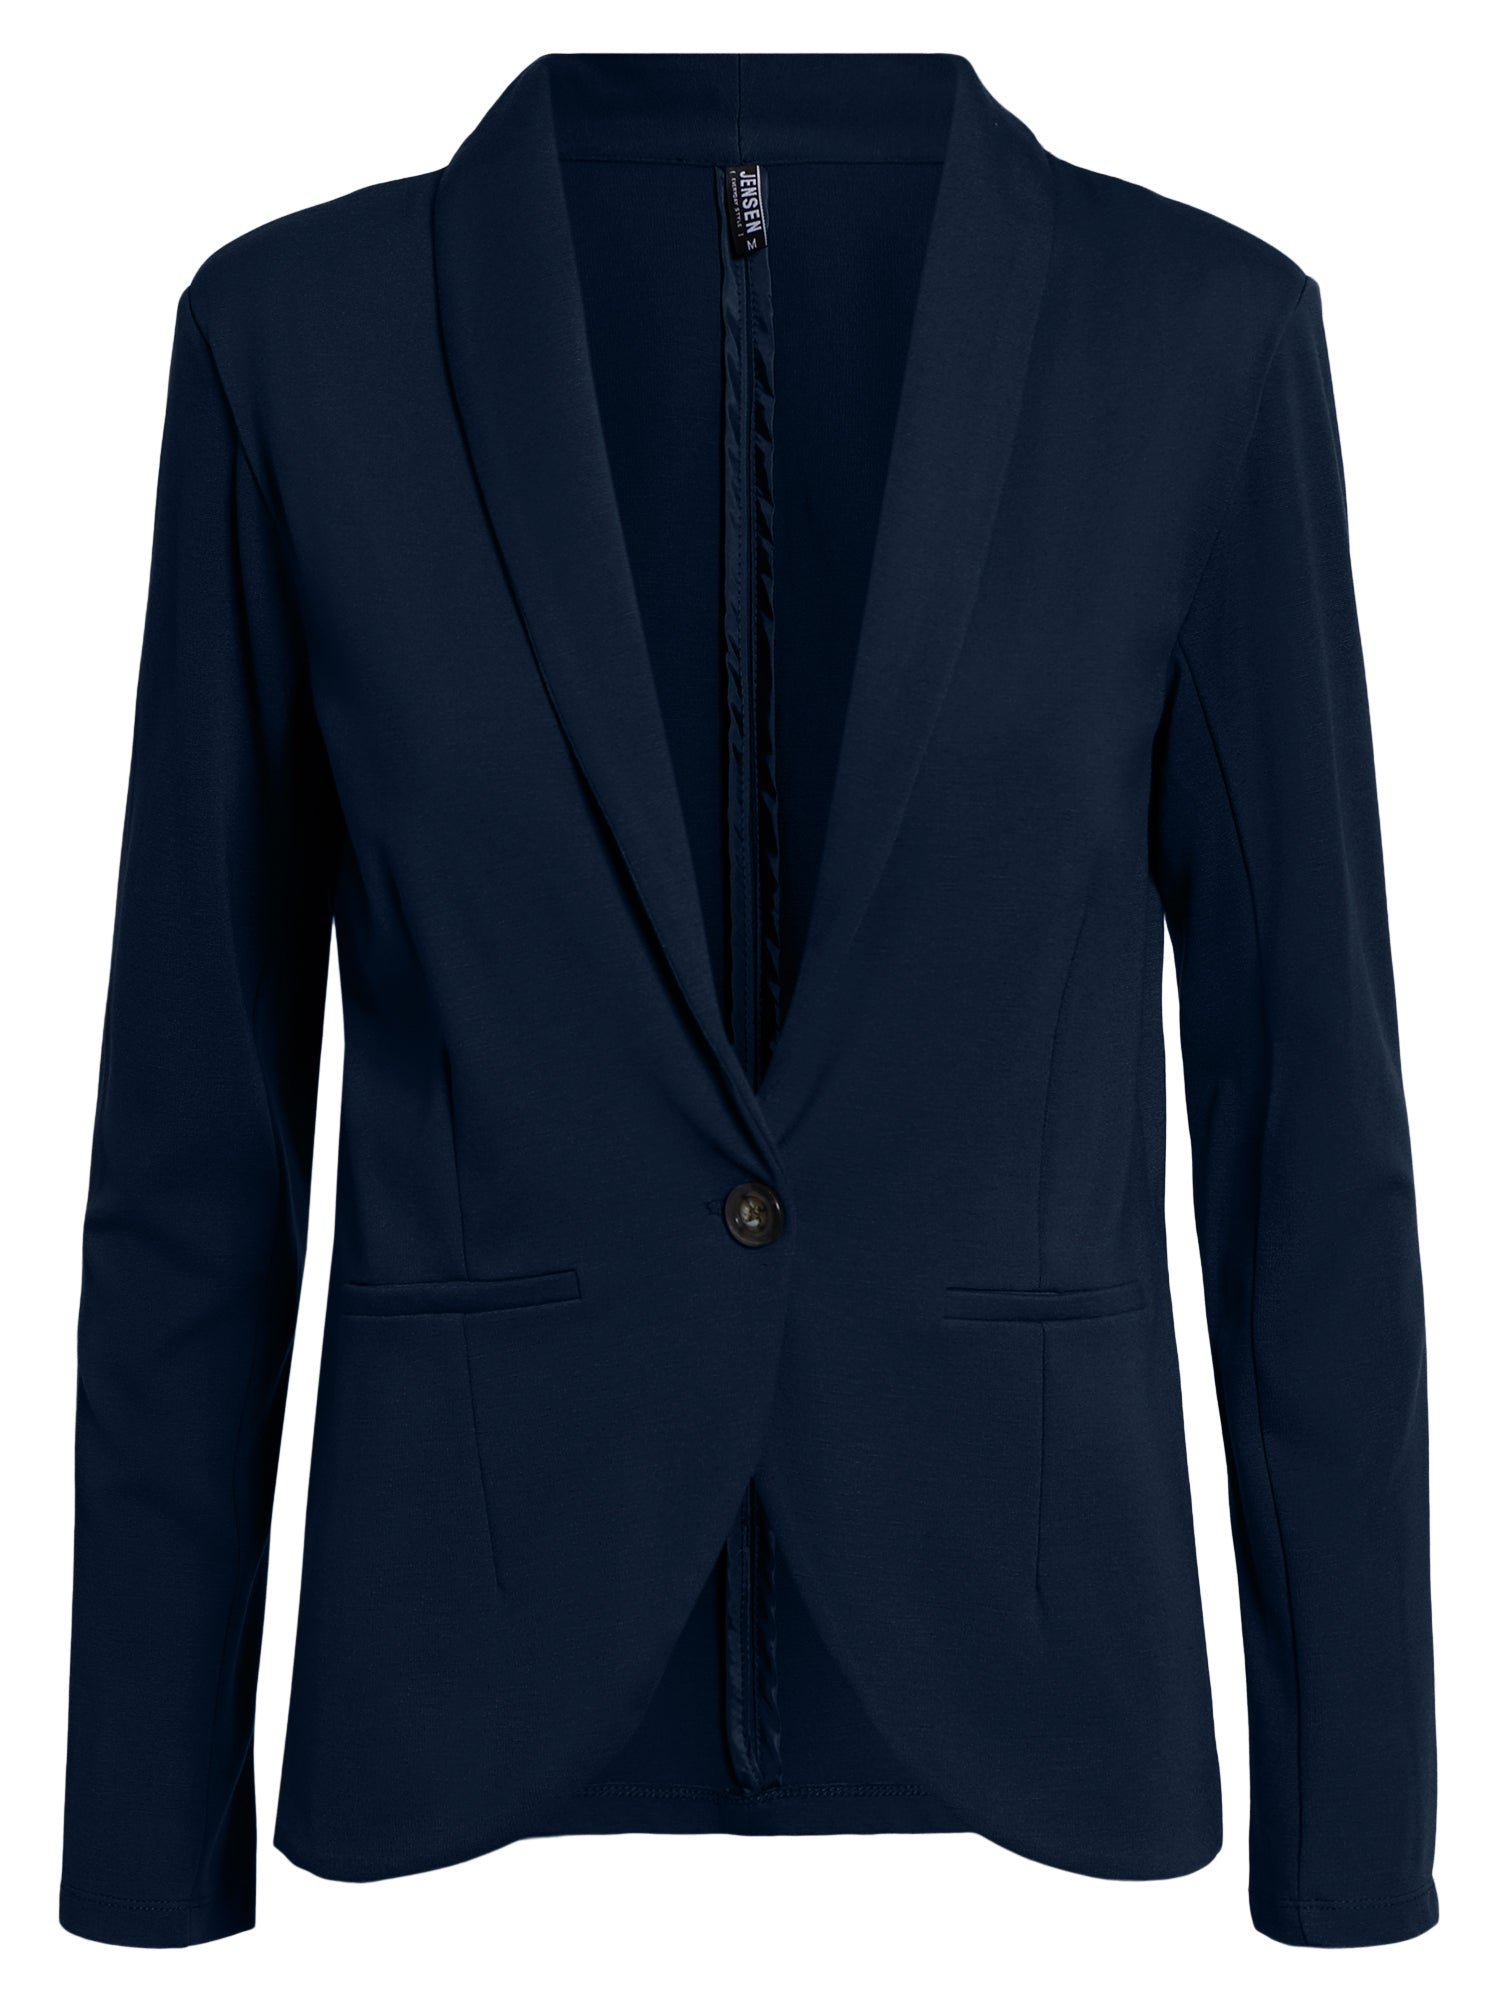 Image of   Blazer - Navy